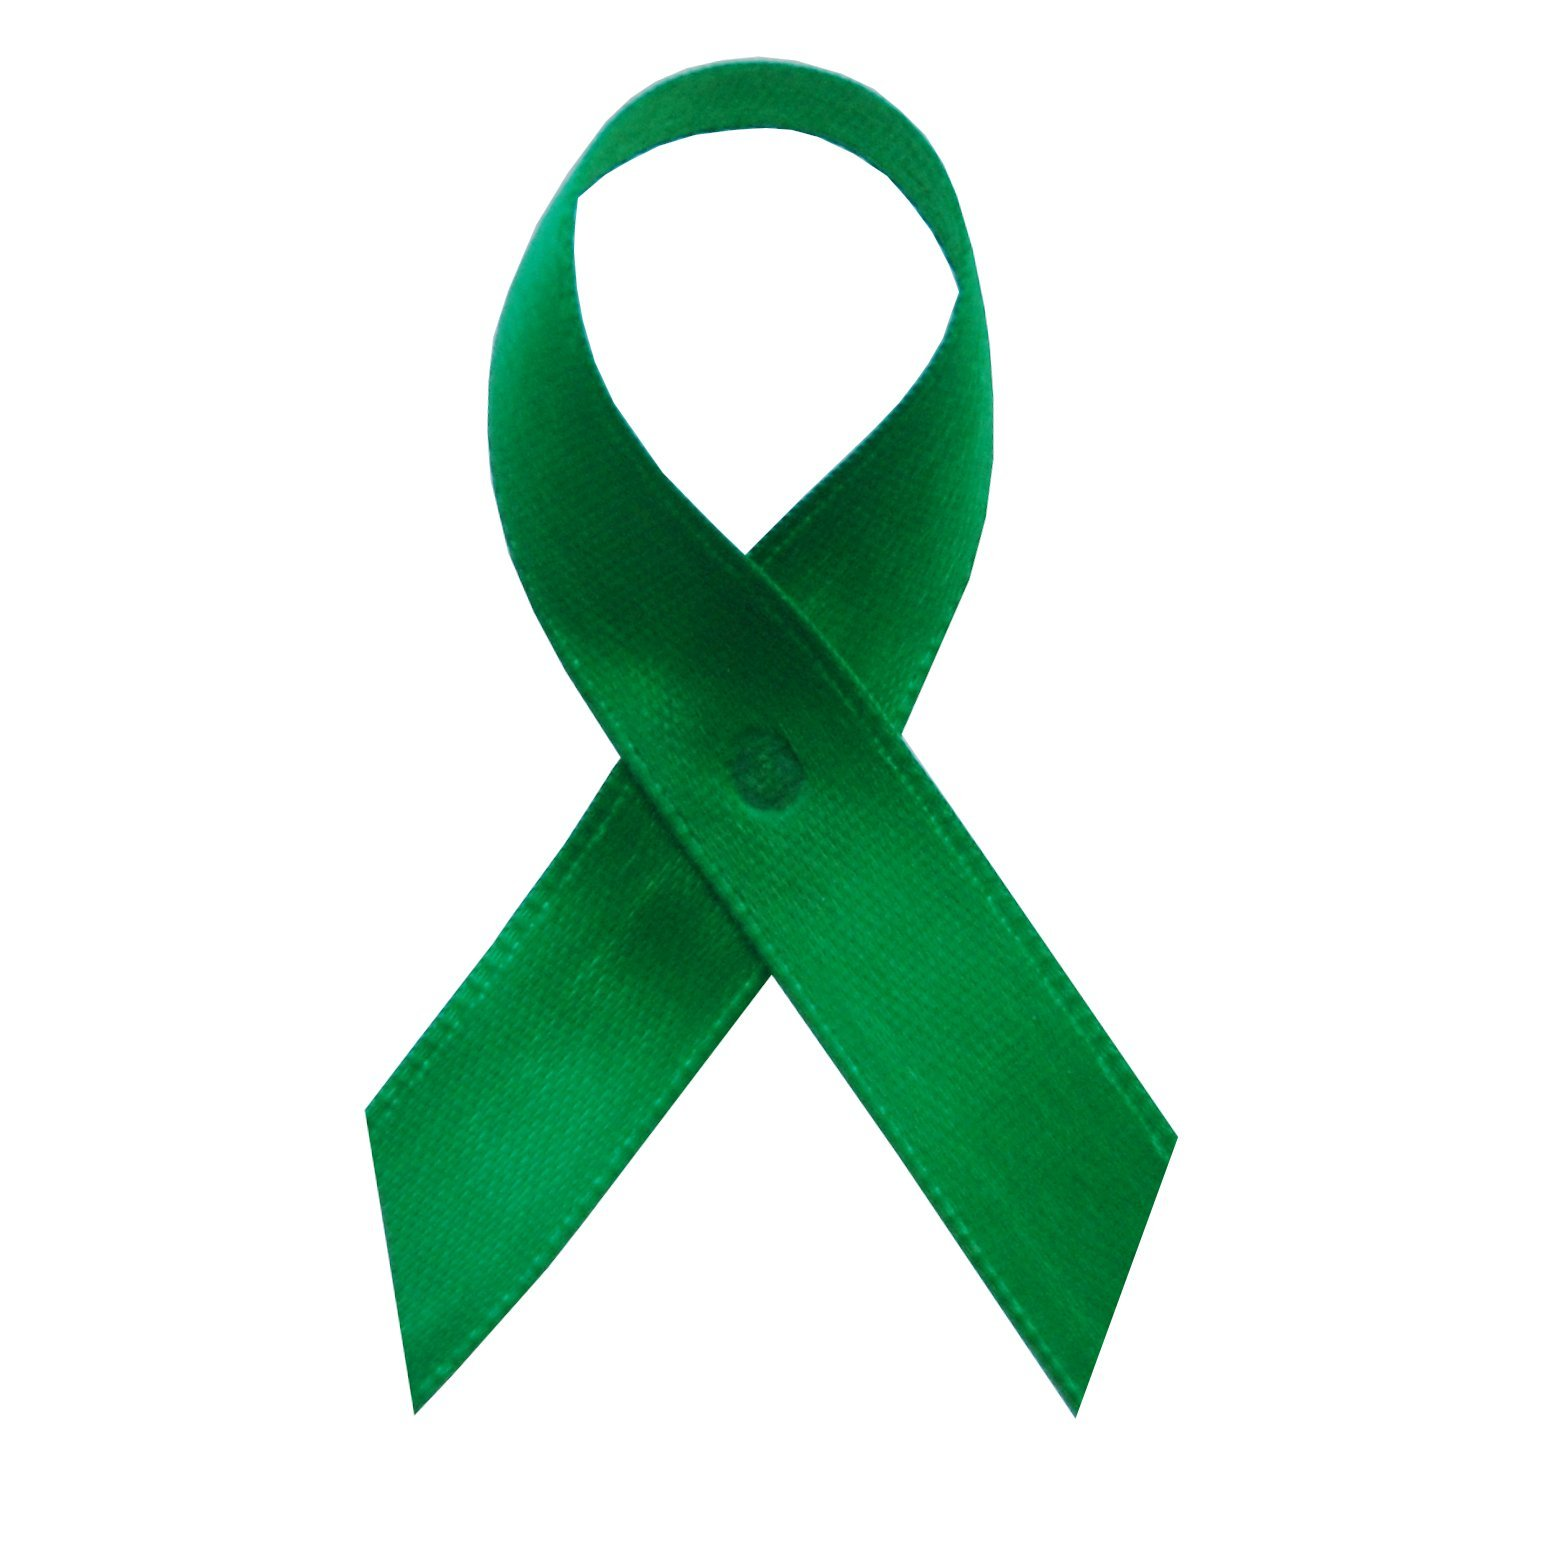 250 USA Made Emerald Green Satin Awareness Ribbons - Bag of 250 Fabric Ribbons with Safety Pins (Many Colors Available) by The Ribbon Factory (Image #1)